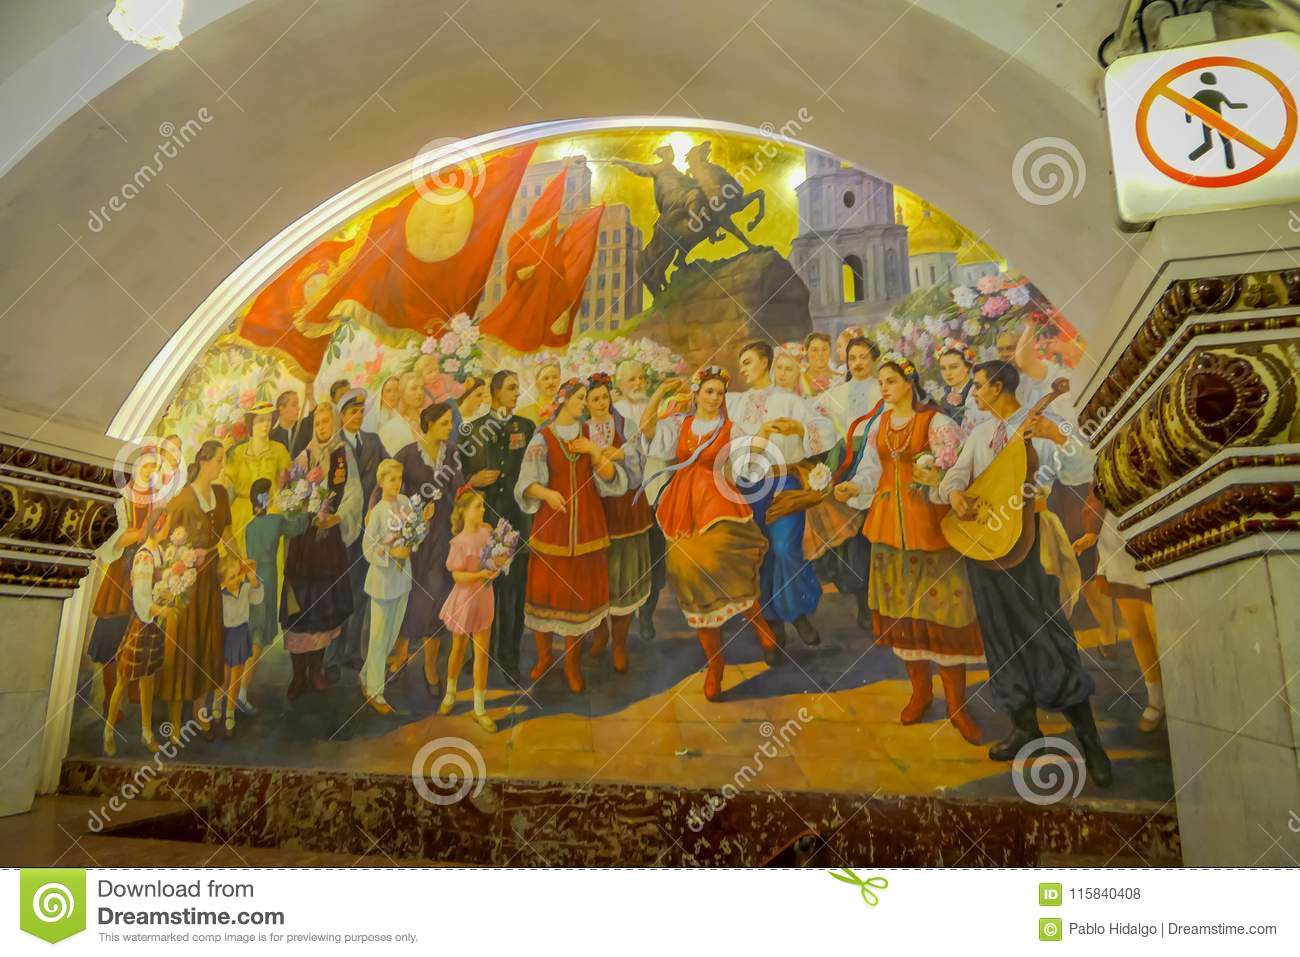 MOSCOW, RUSSIA- APRIL, 29, 2018: Beautiful indoor view of mosaic art in the wall at Kievskaya Metro Station, in Moscow